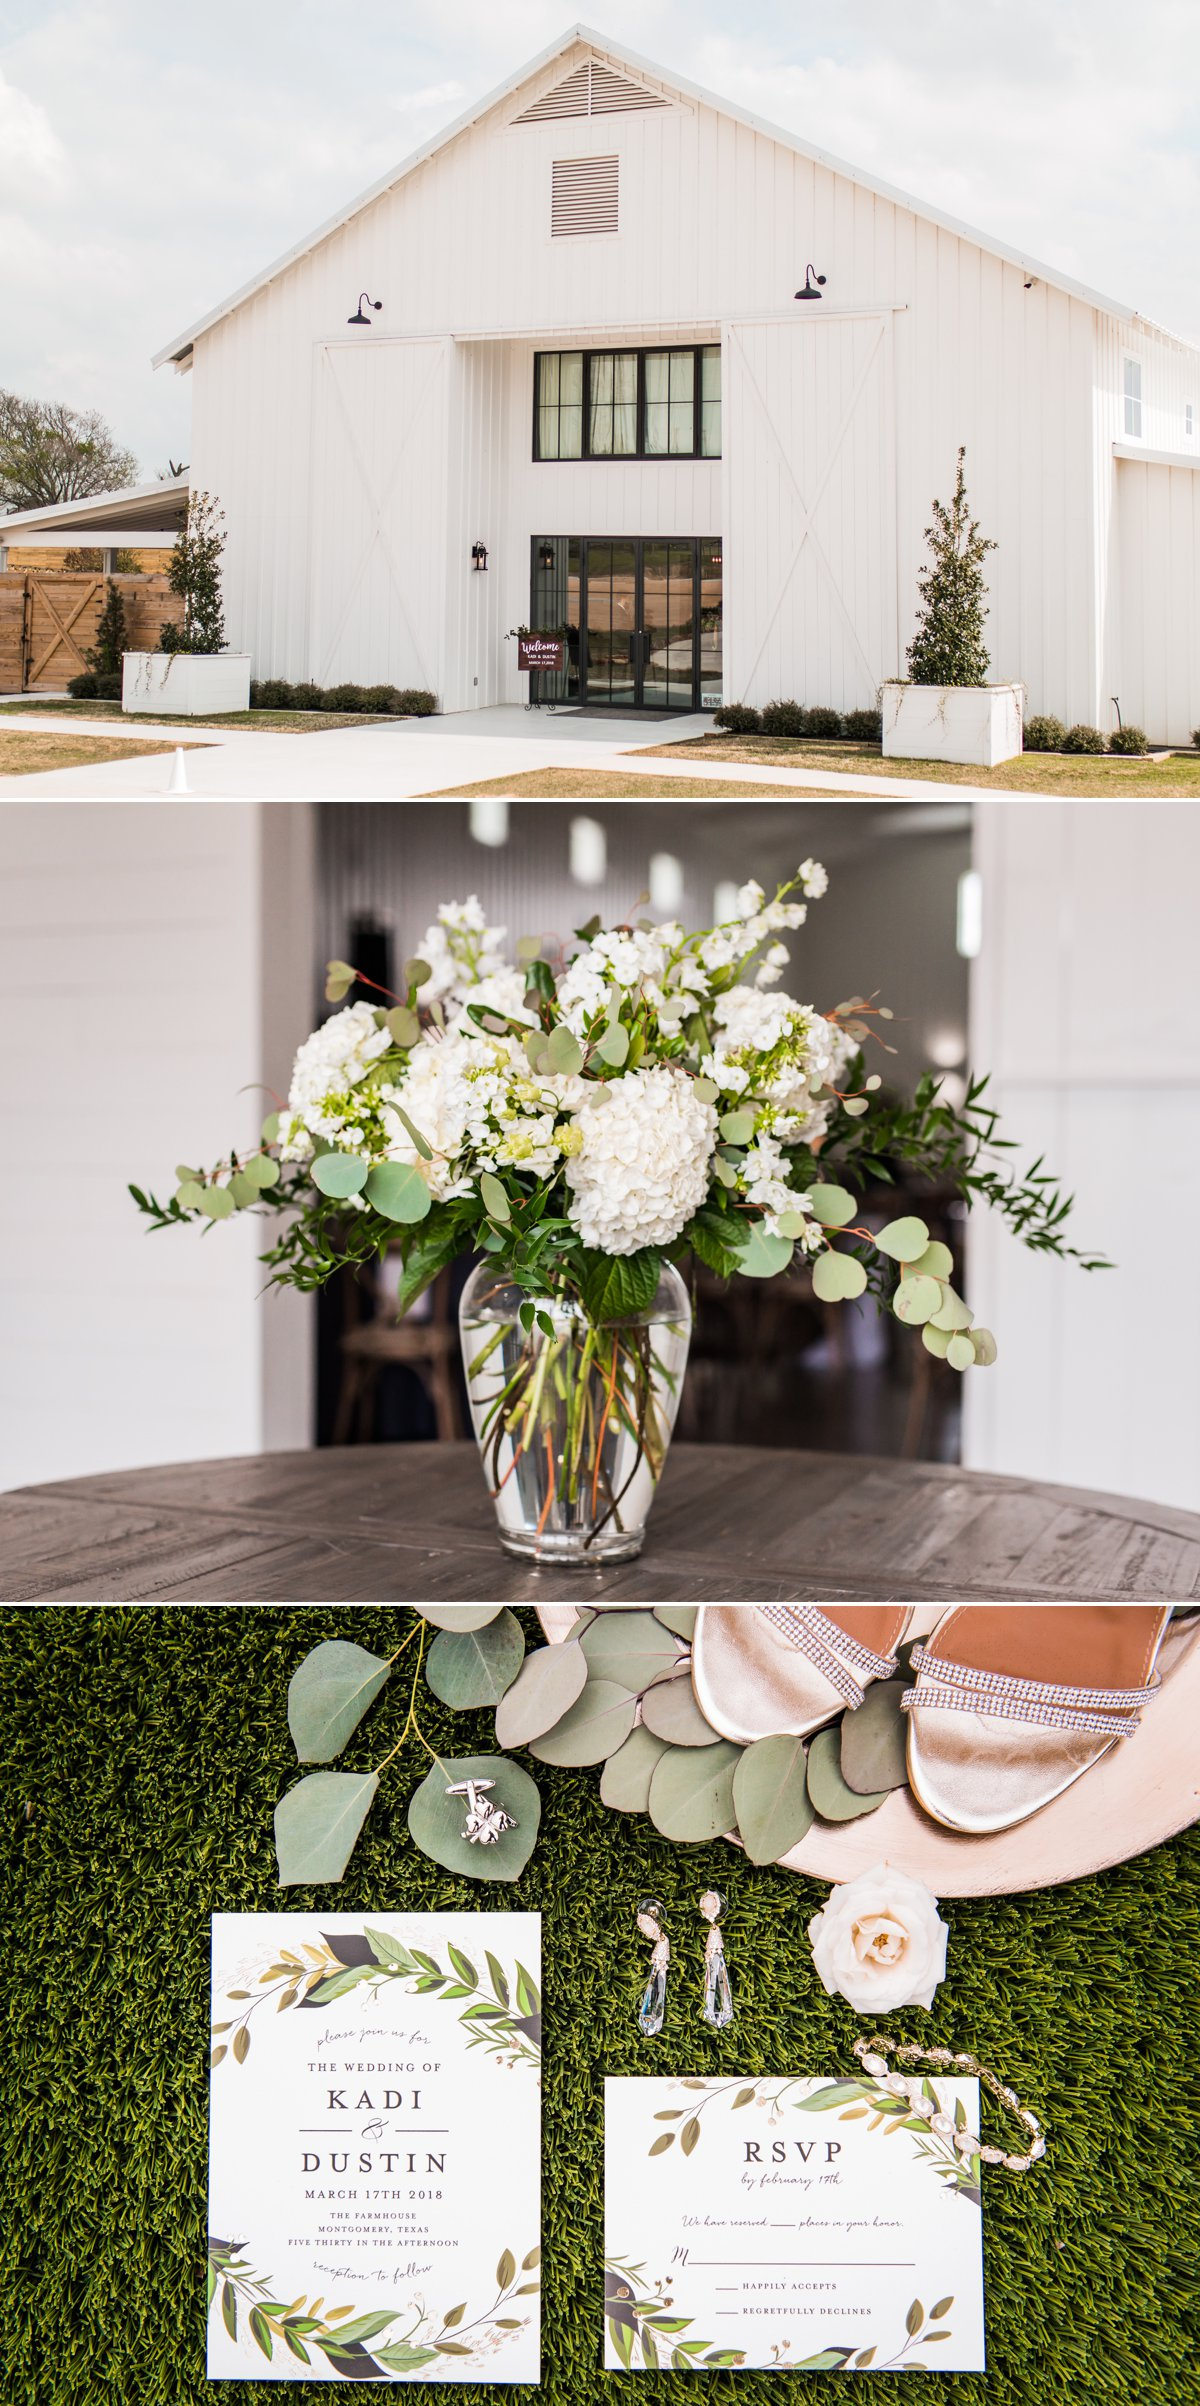 The Farmhouse Wedding Venue Wedding Details